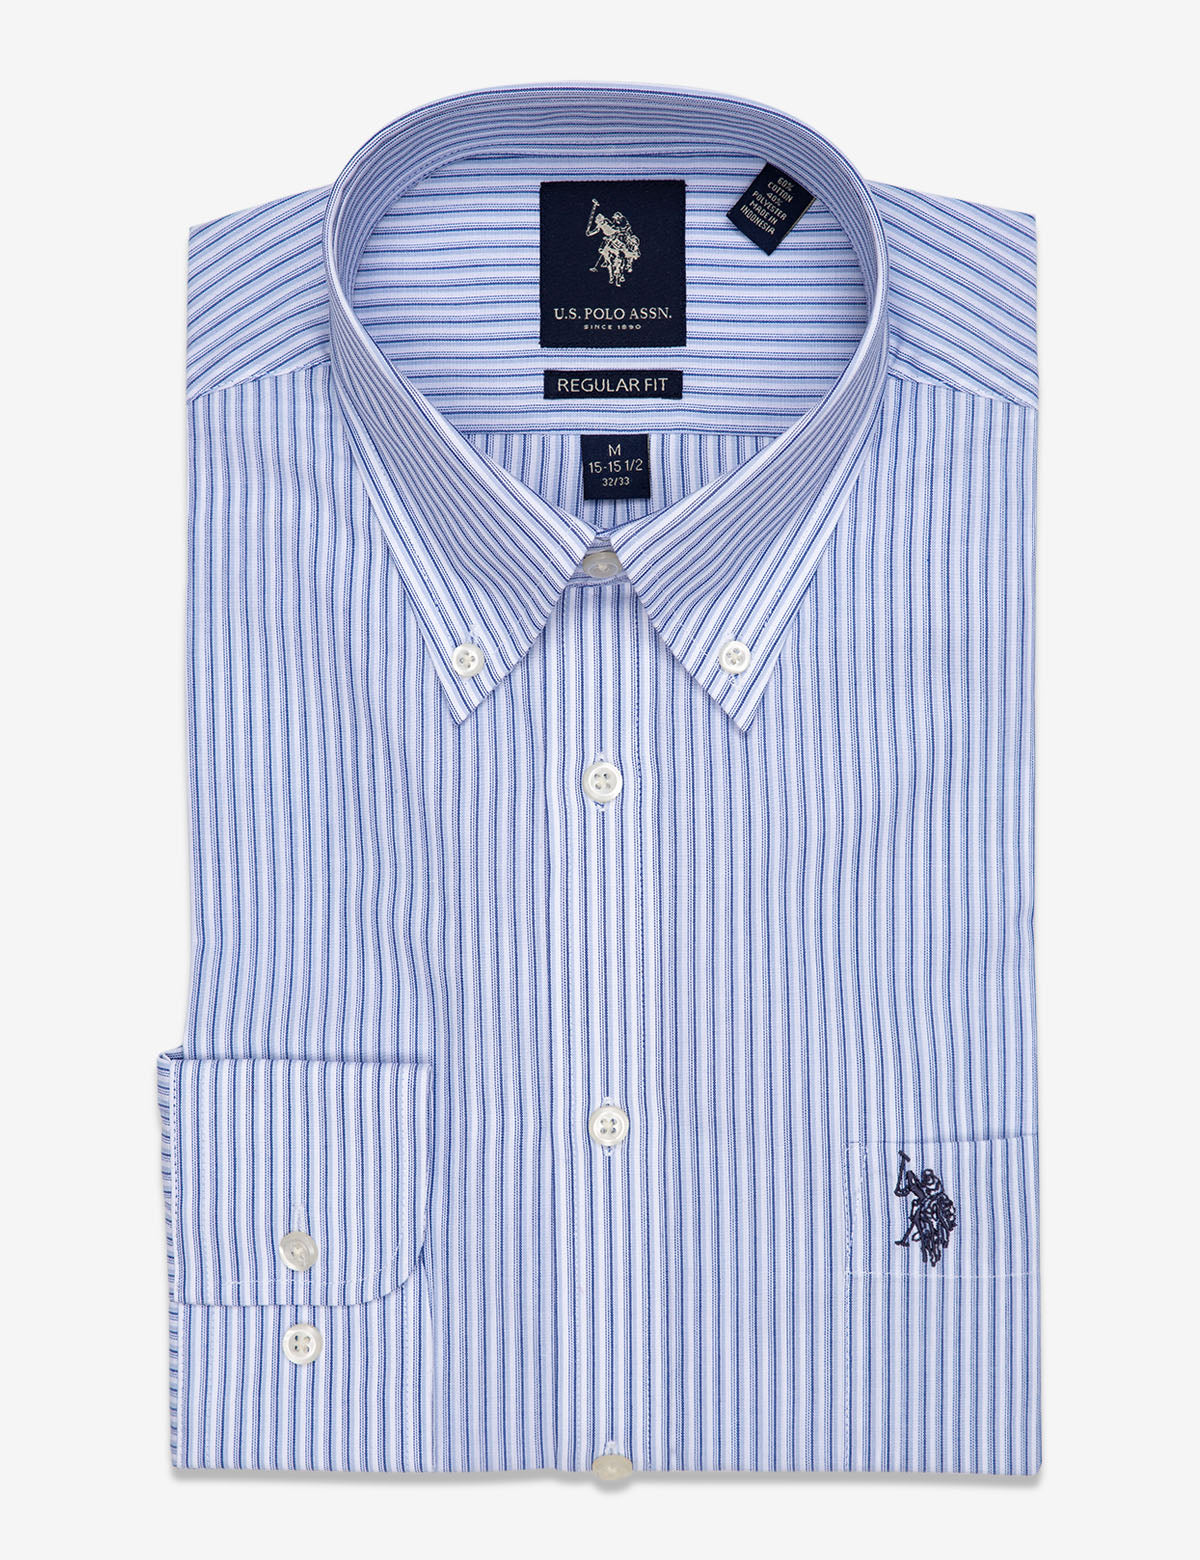 DOUBLE STRIPED DRESS SHIRT - U.S. Polo Assn.